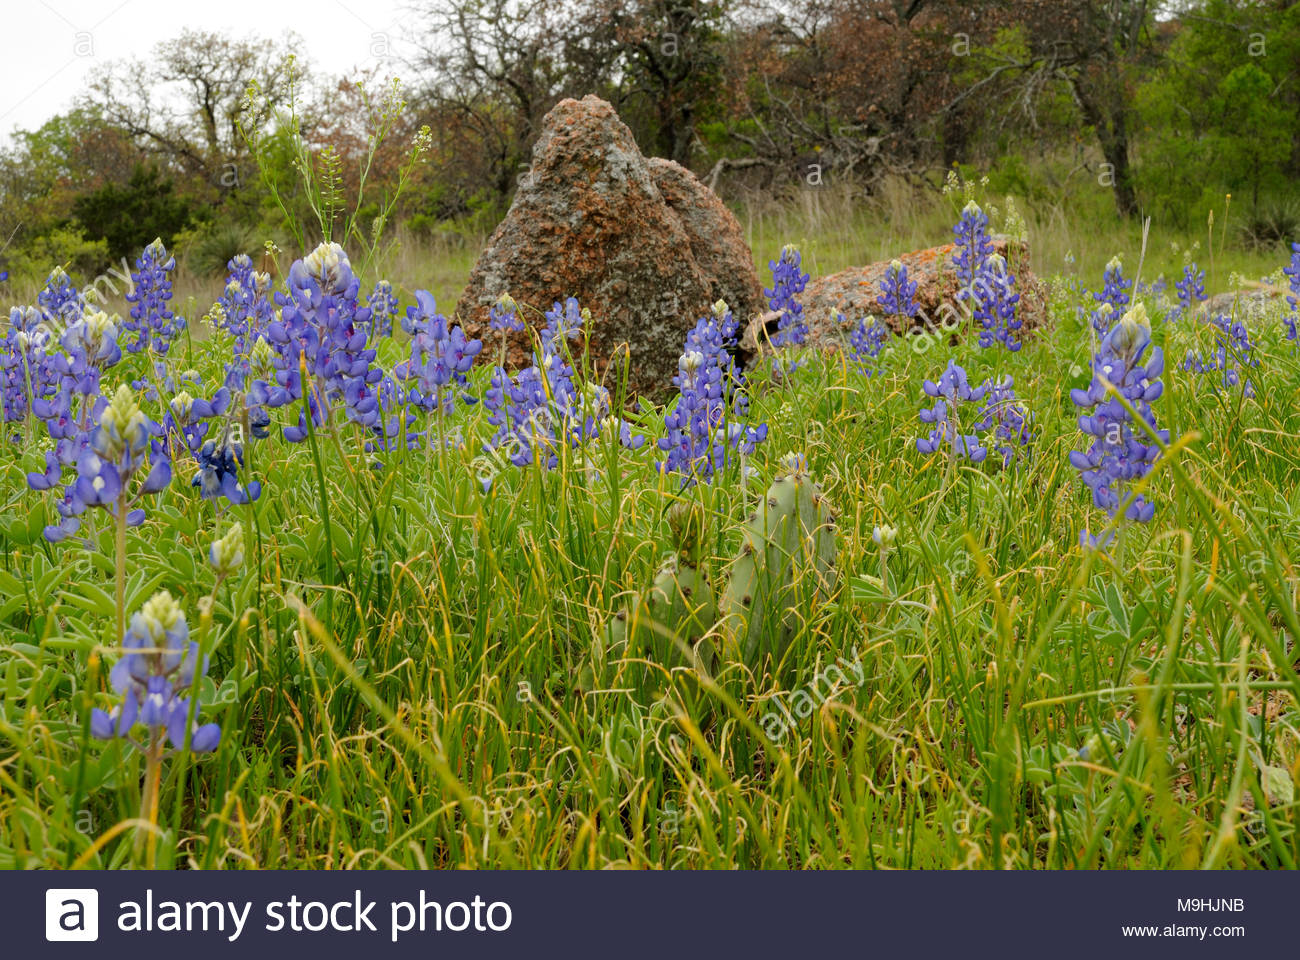 Texas Bluebonnets and Pink Granite Boulder. Taken on a trail at Enchanted Rock State Park in the Texas Hill Country west of Austin Texas near Llano - Stock Image